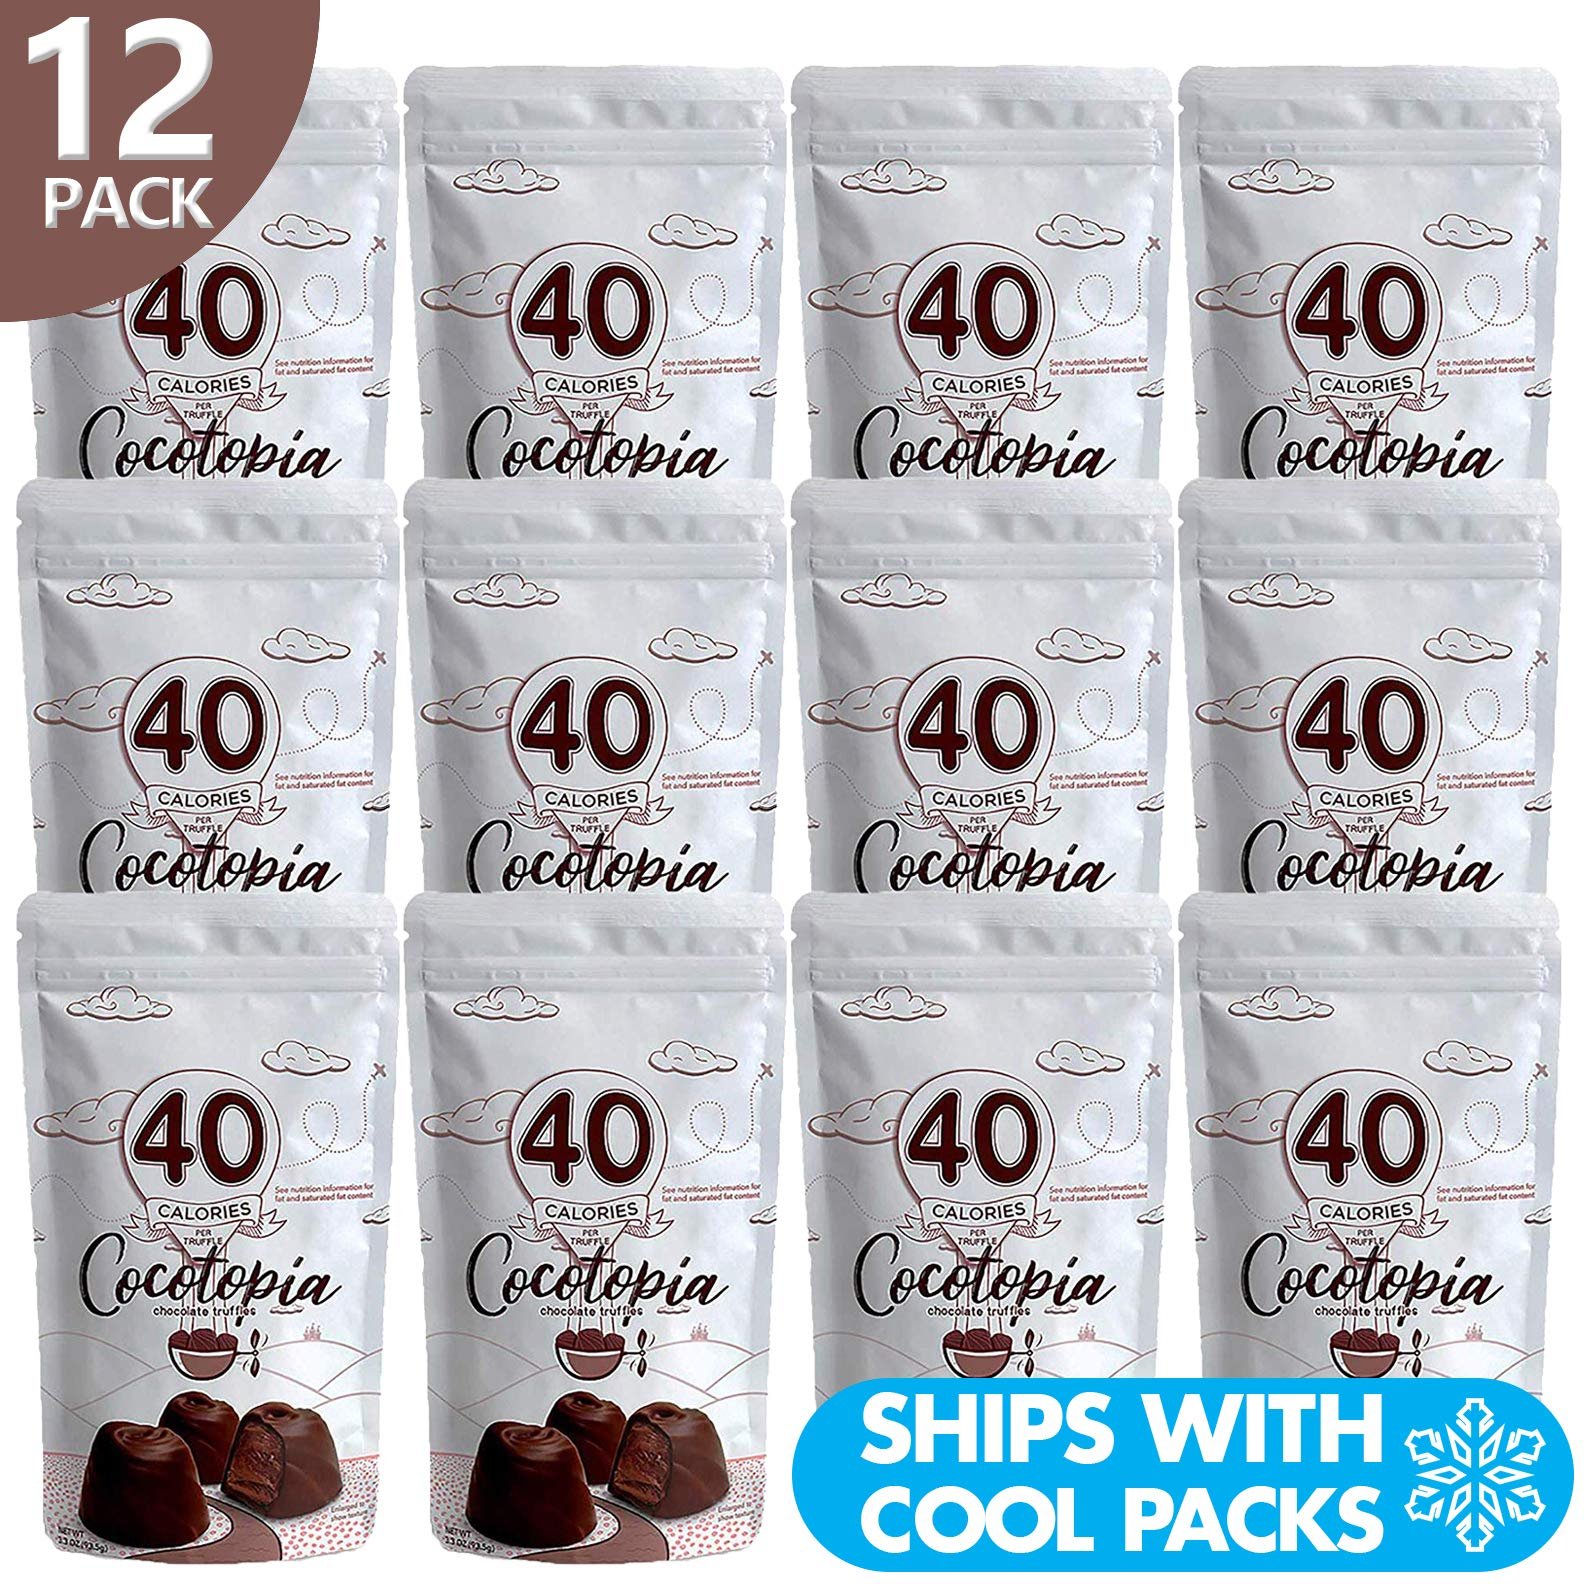 12 Pack of Cocotopia Chocolate Truffles   Fewer Calories   Less Fat   Less Sugar   Resealable Bag   3.3 OZ per Pouch